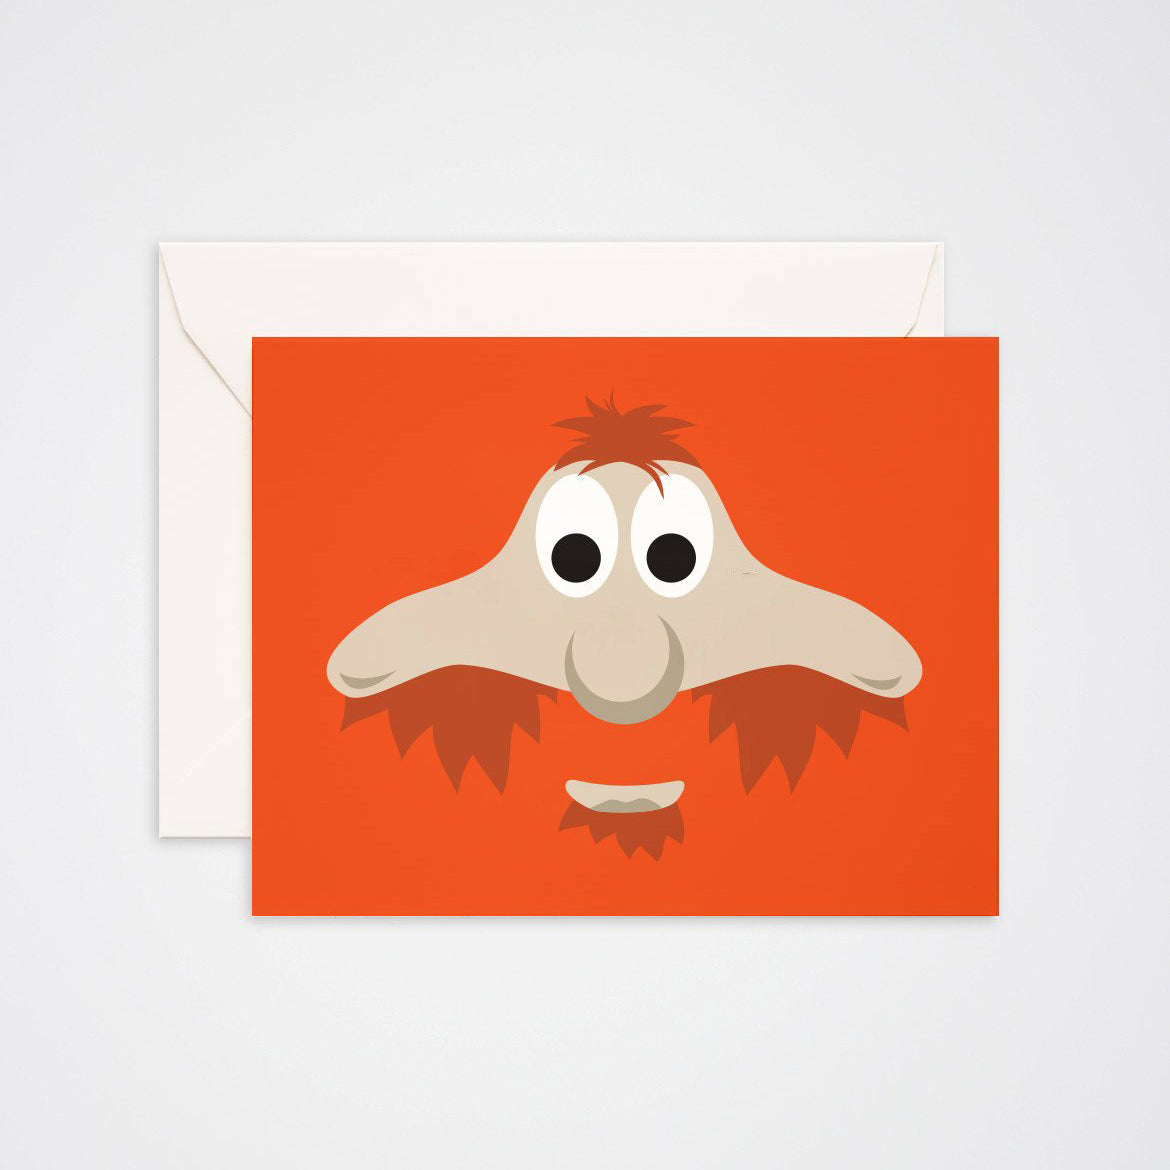 Youppi Greeting Card - Main and Local